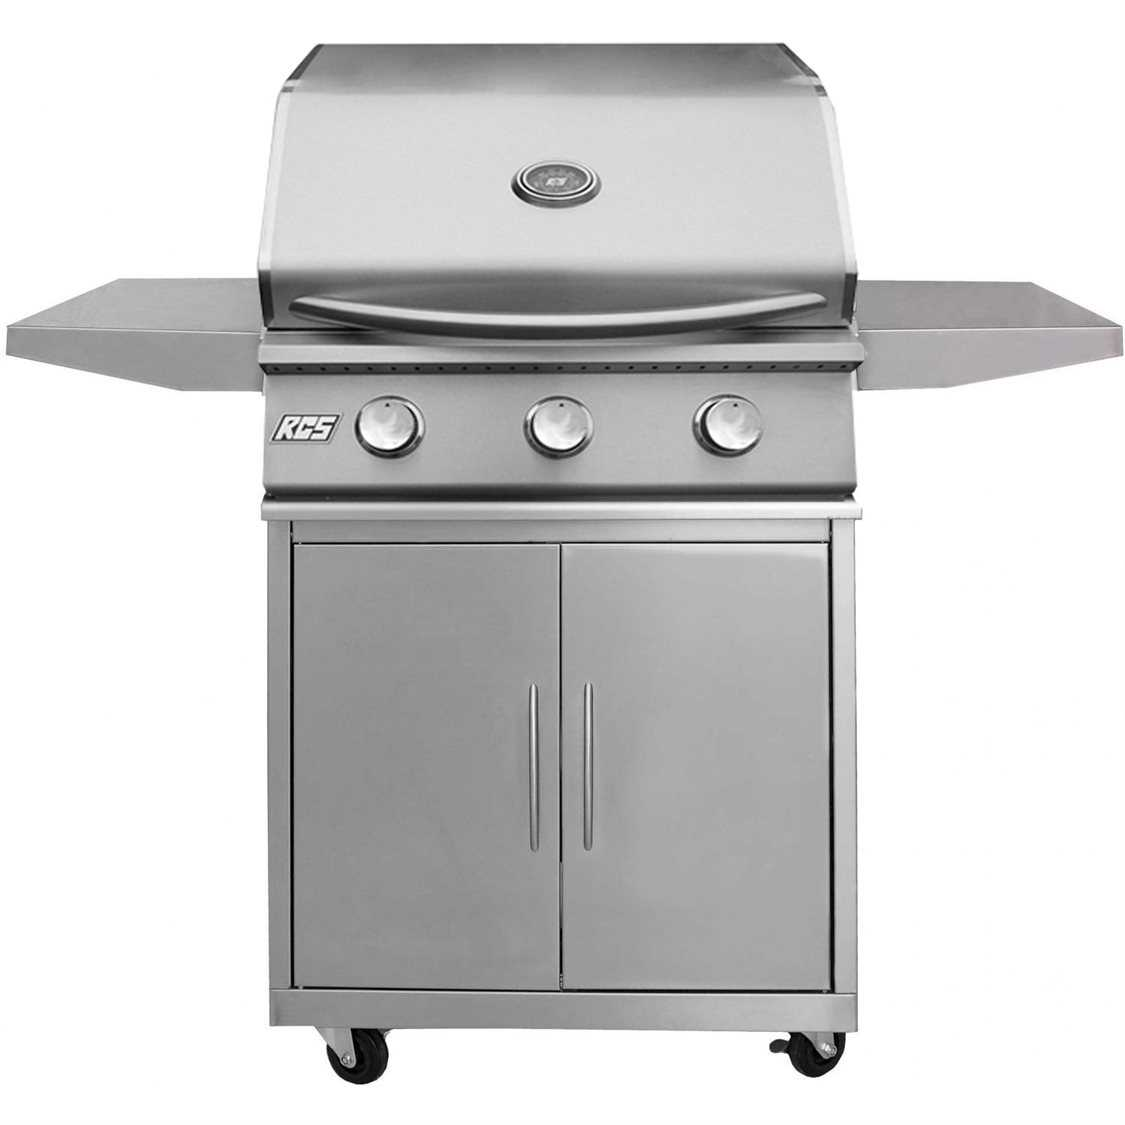 Rcs grills in premier series stainless natural gas grill